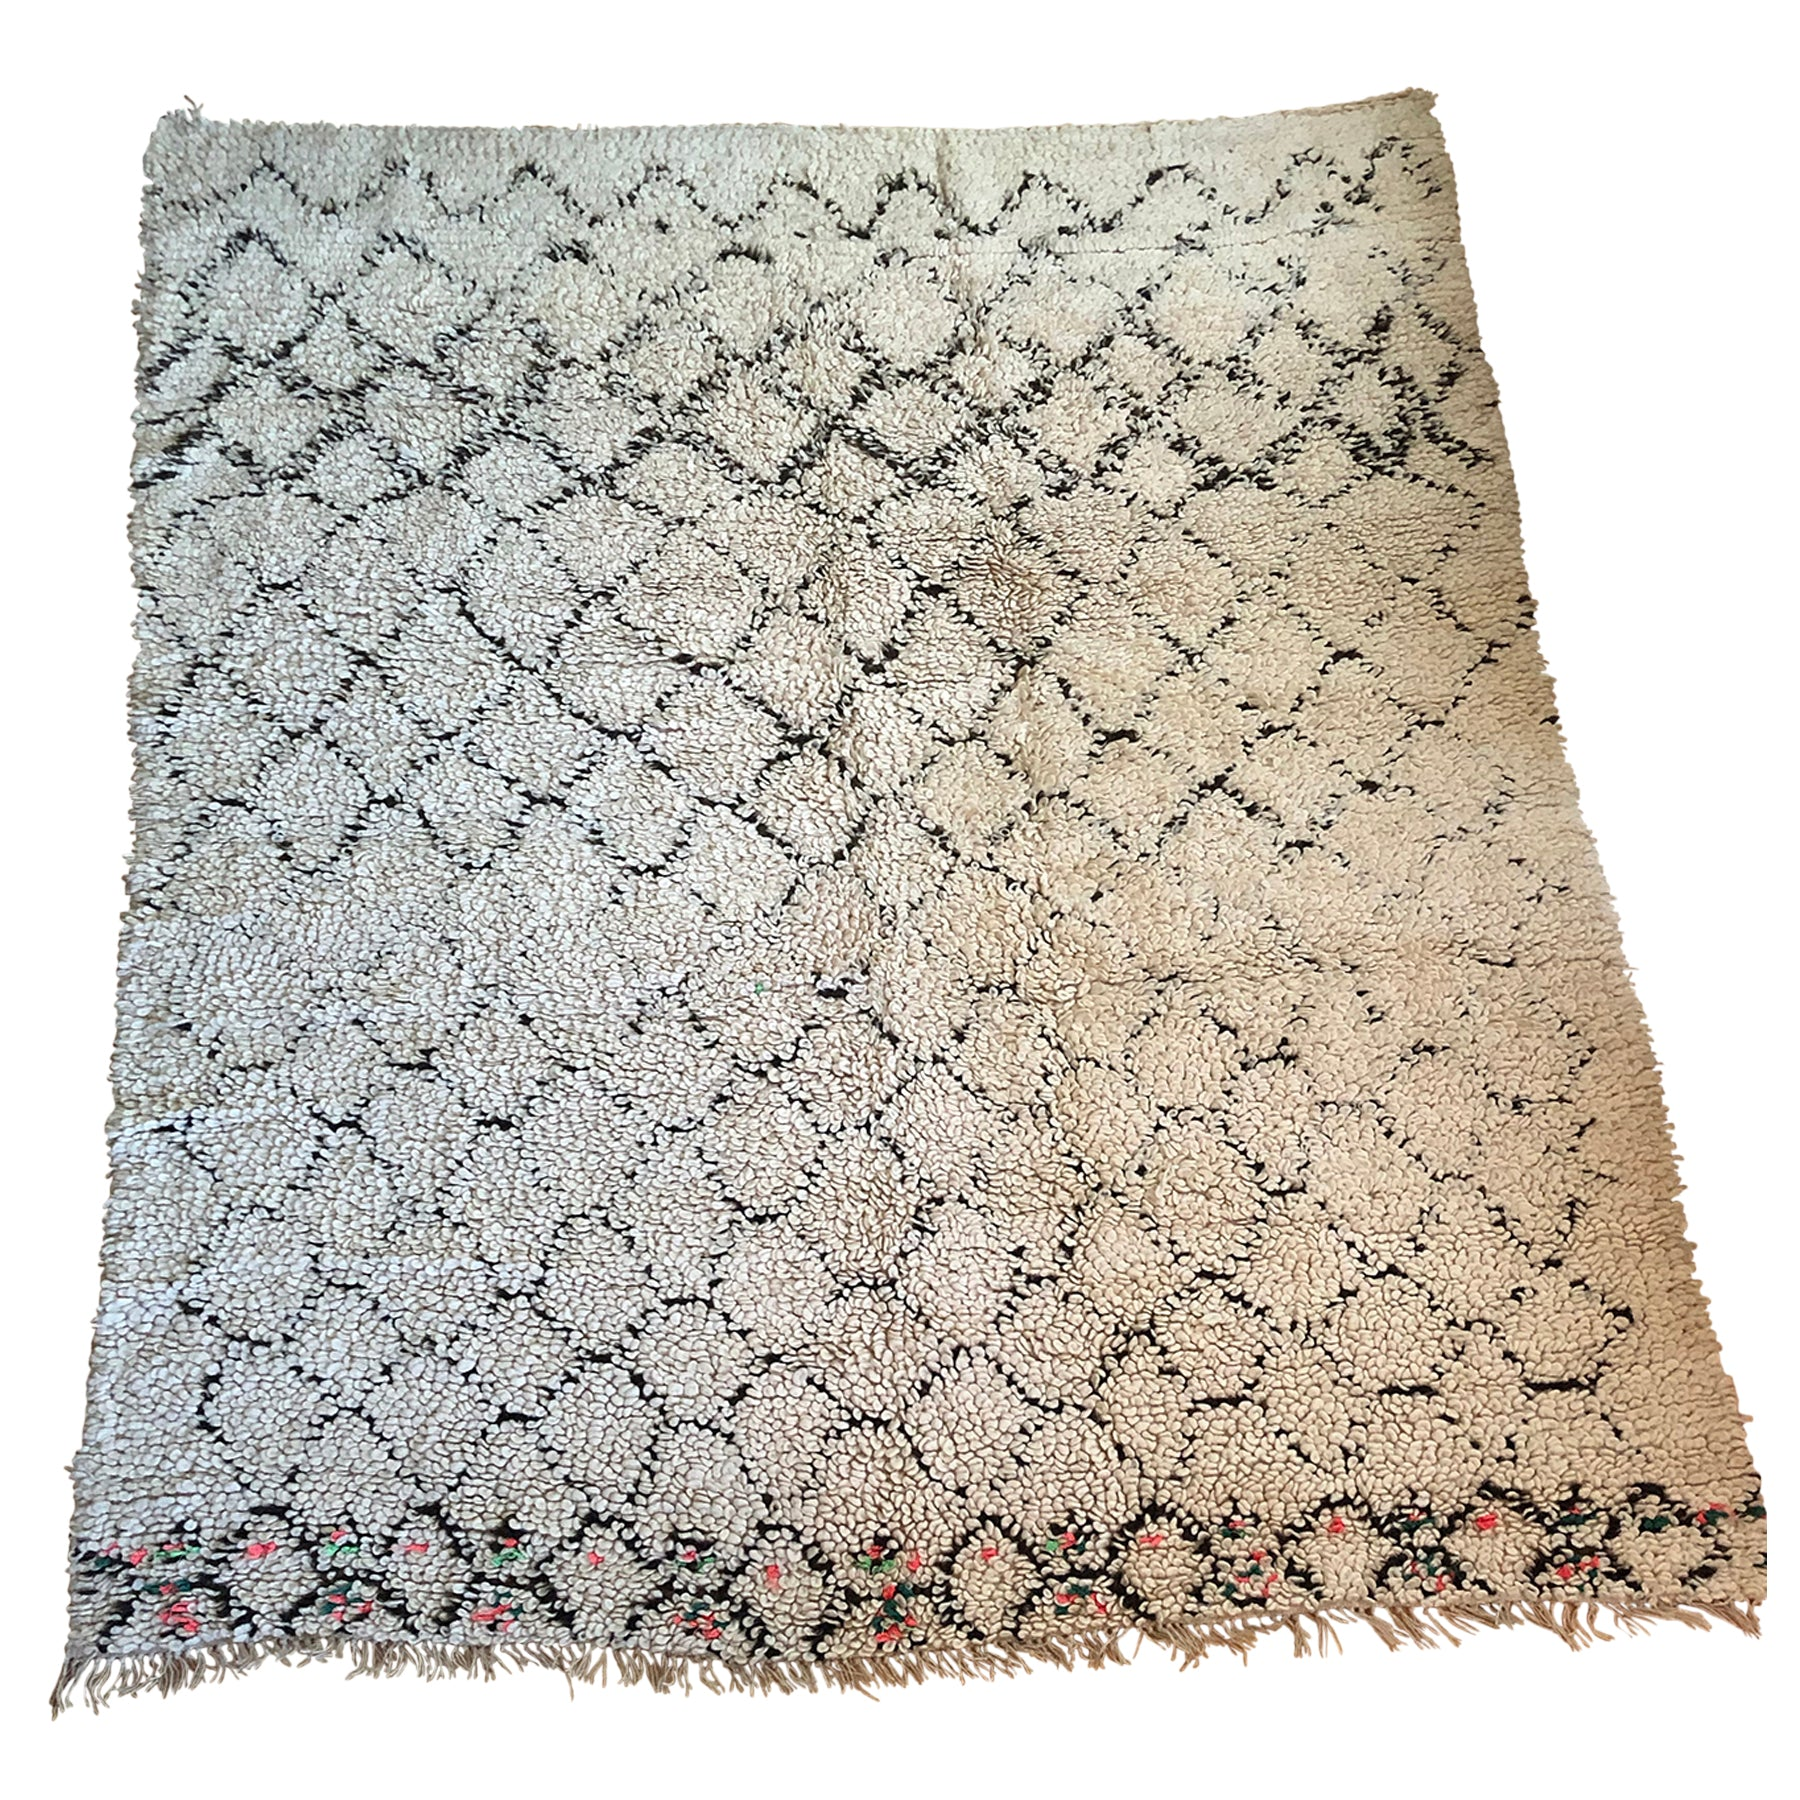 White Moroccan bedside rug with inlaid black diamond pattern - Kantara | Moroccan Rugs